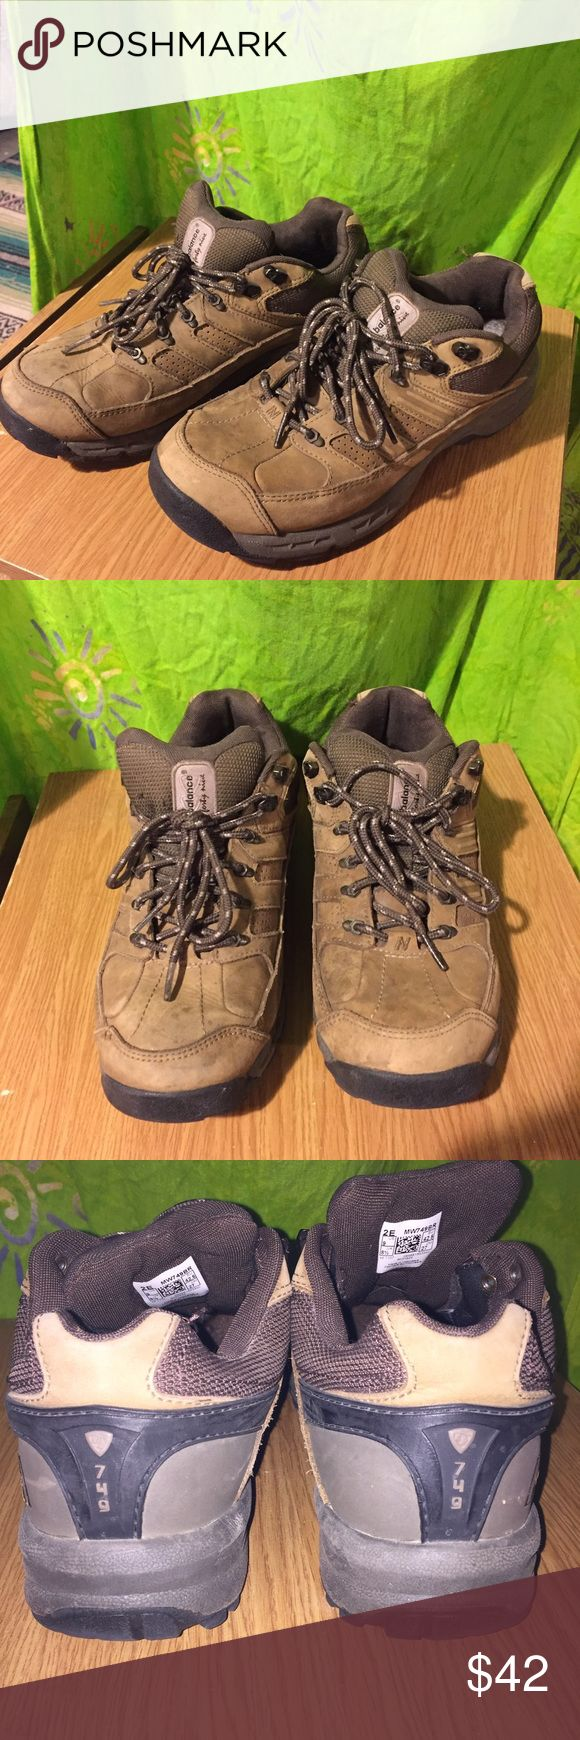 Hiking shoes MENS NEW BALANCE country Great condition. New Balance Shoes